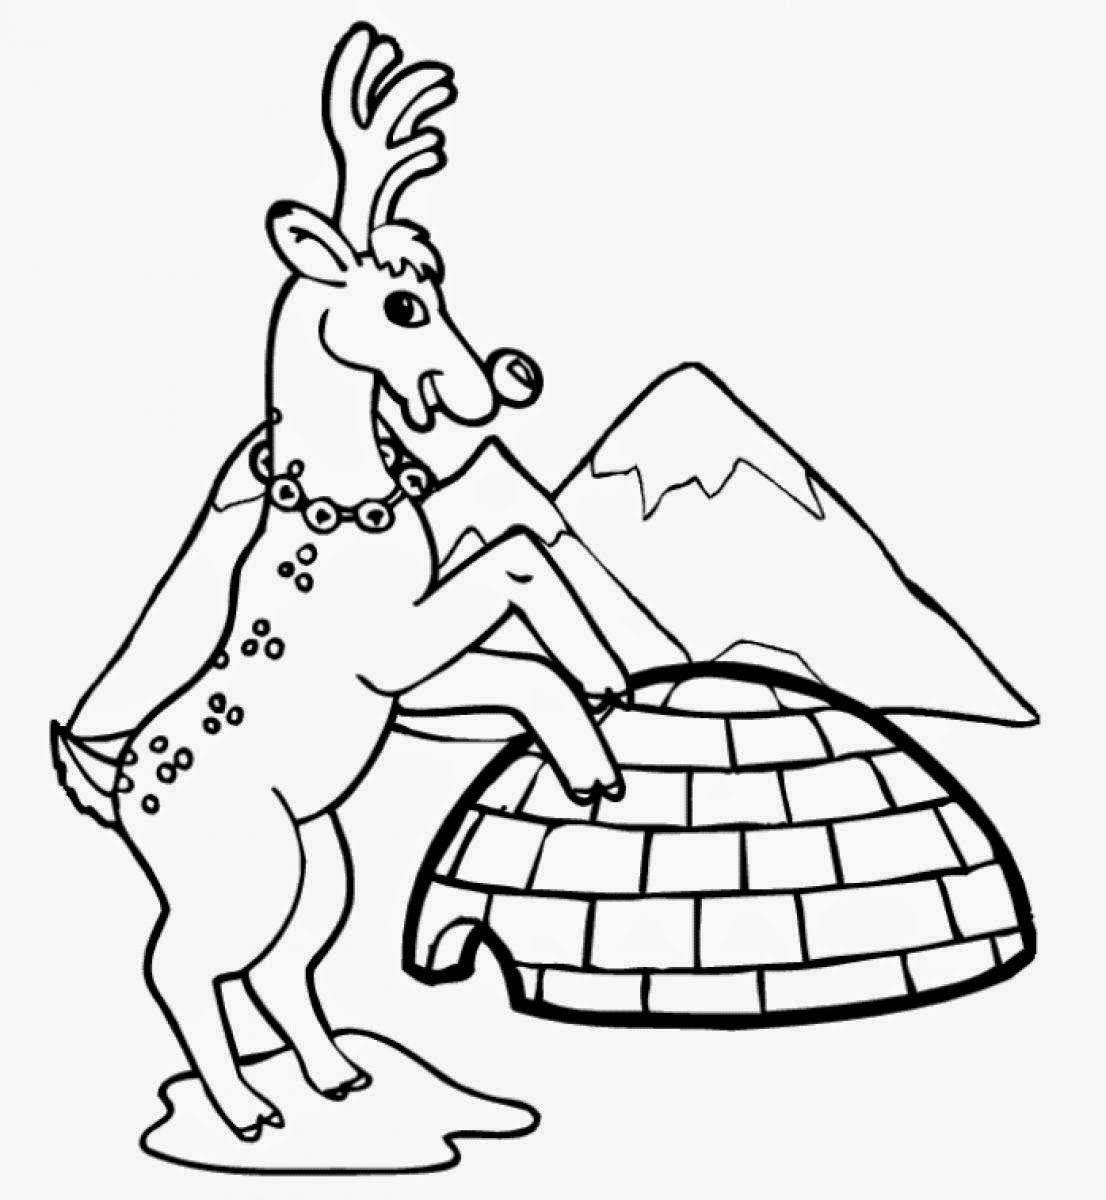 winter coloring winter coloring pages coloring pages to download and print coloring winter